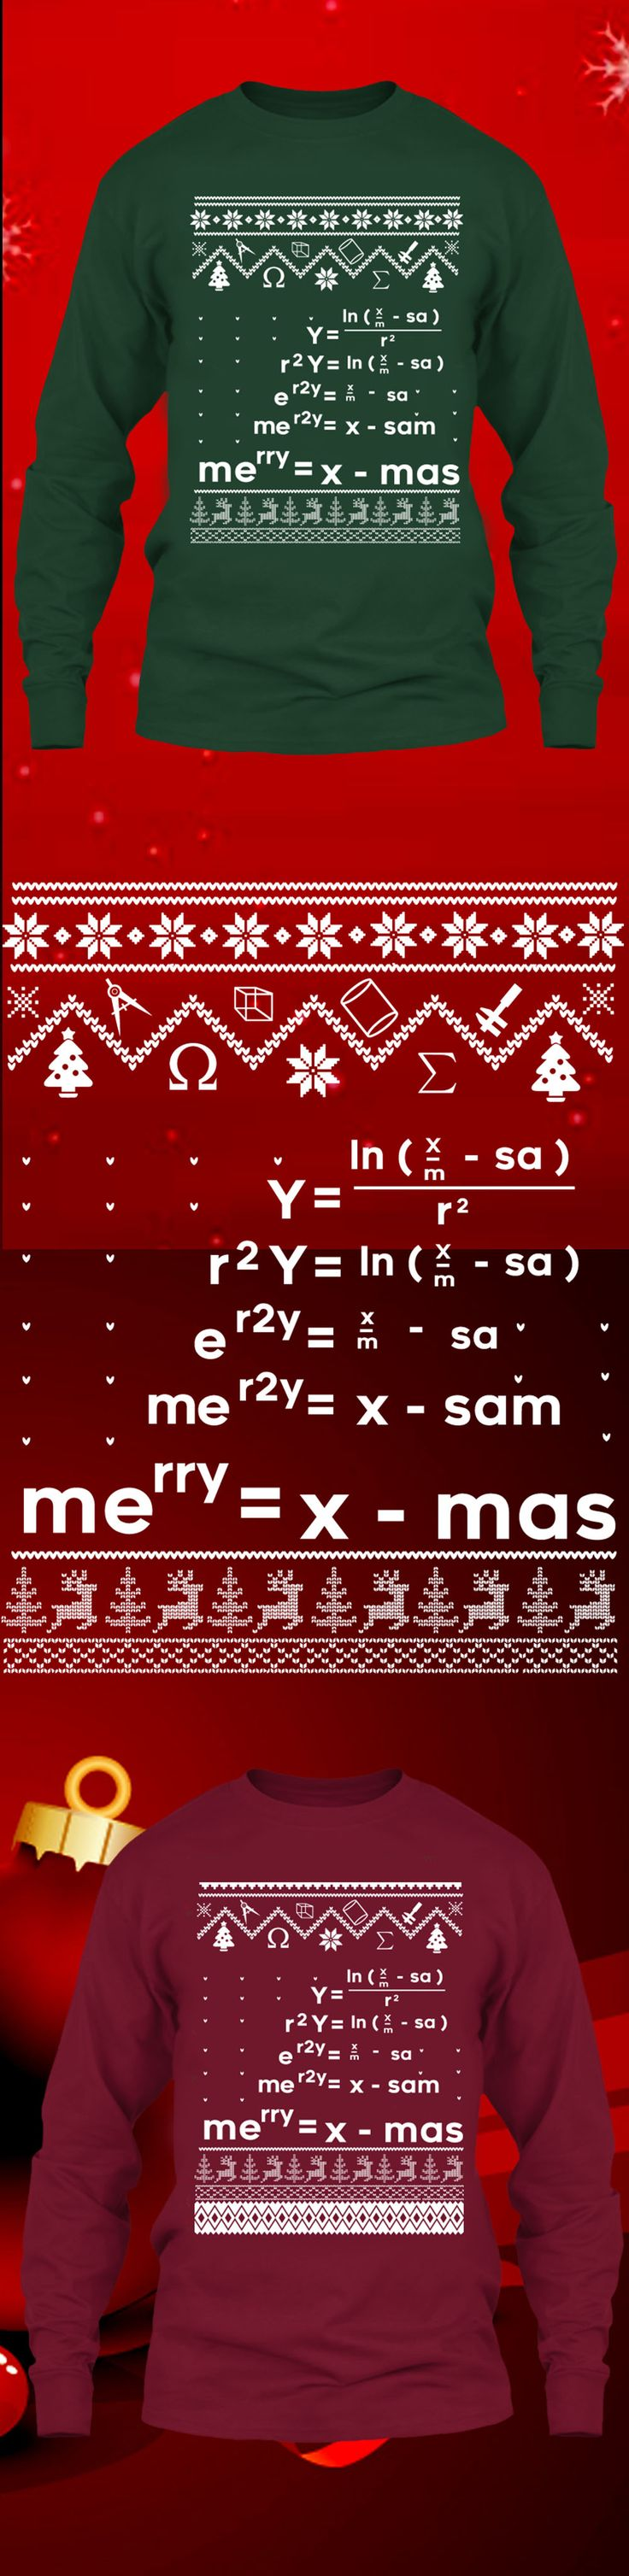 Math Christmas Sweater - Get this limited edition ugly Christmas Sweater just in time for the holidays! Buy 2 or more, save on shipping!